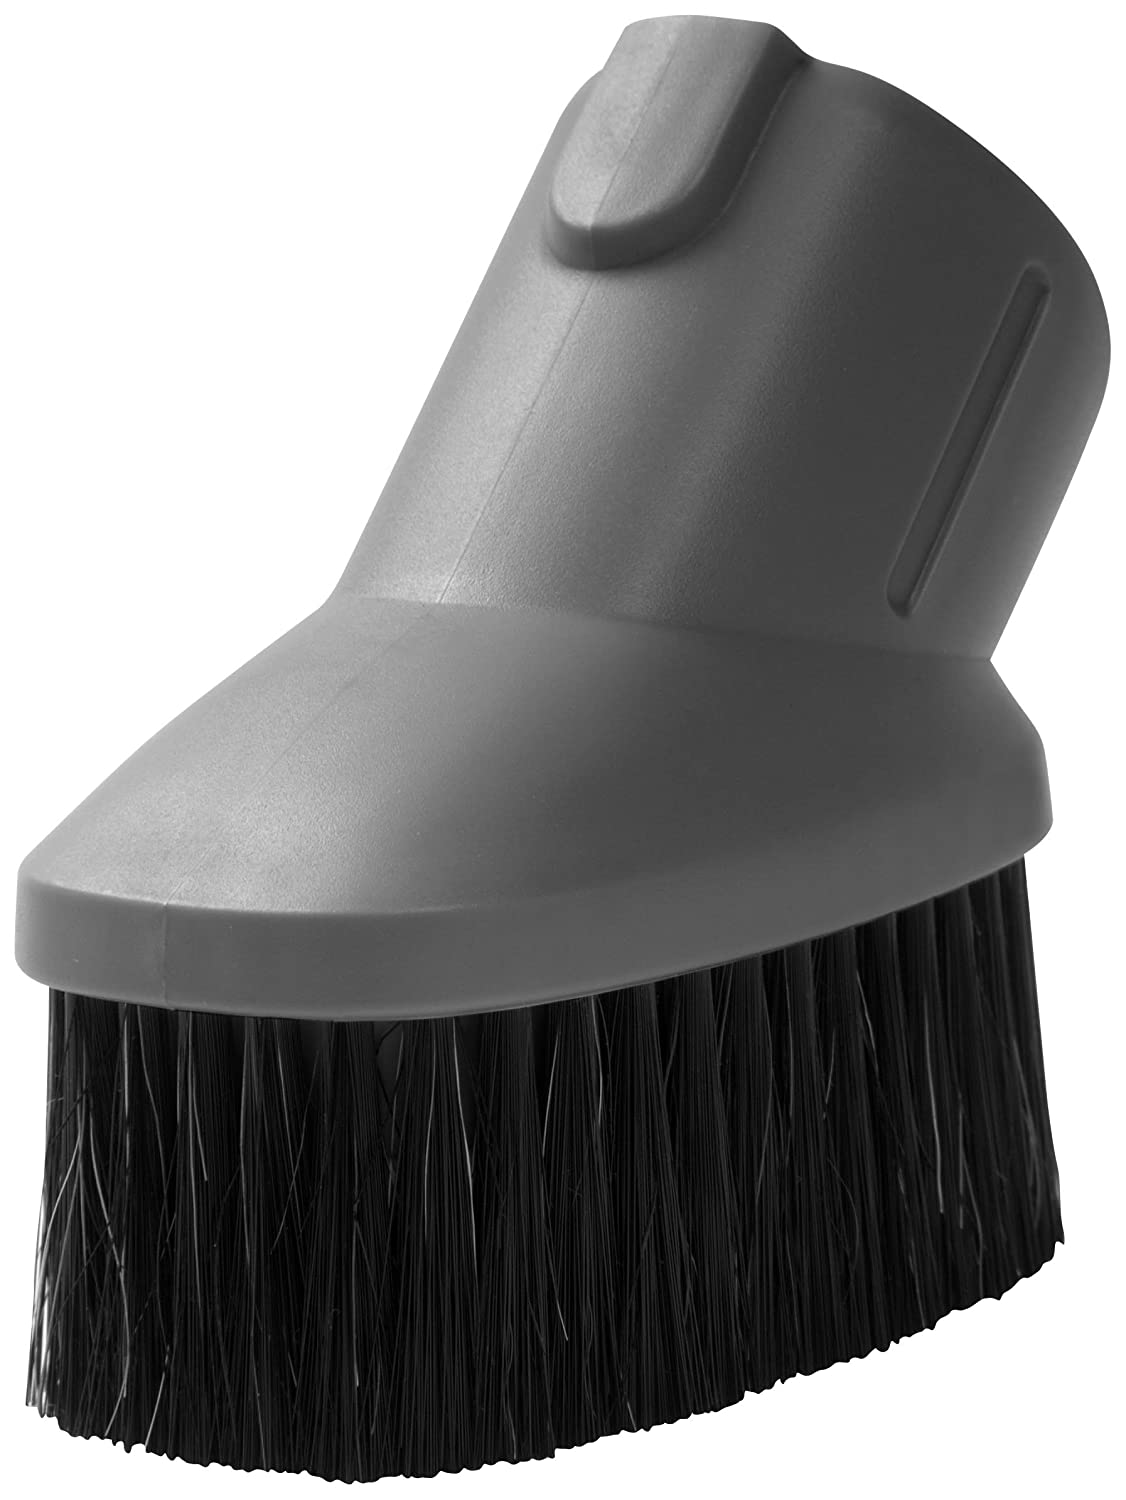 Electrolux 045030 Central Vacuum On-board Dusting Brush Inc